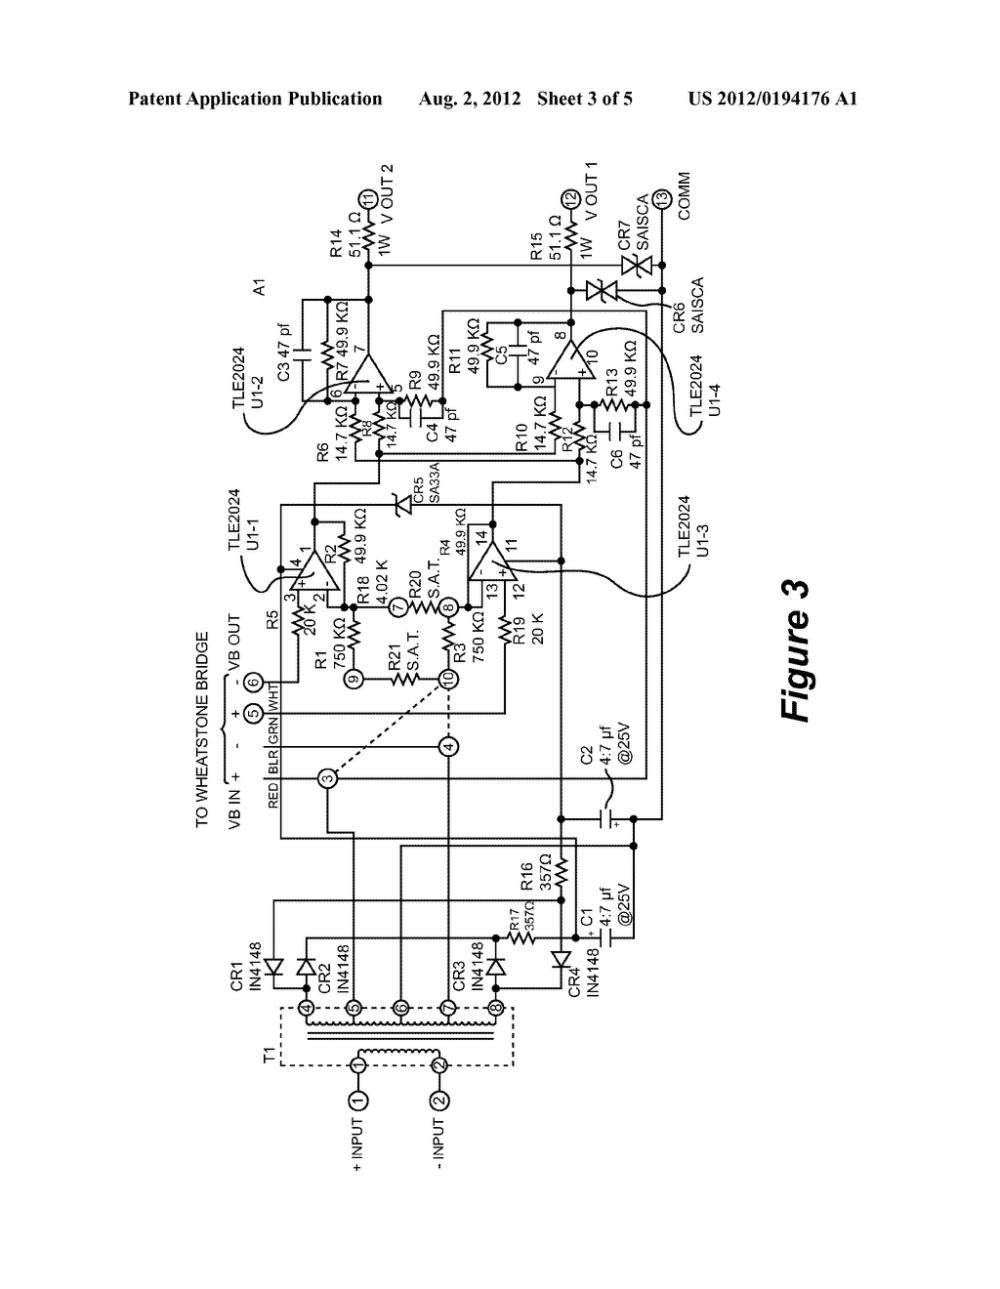 medium resolution of electronic interface for lvdt type pressure transducers using piezoresistive sensors diagram schematic and image 04